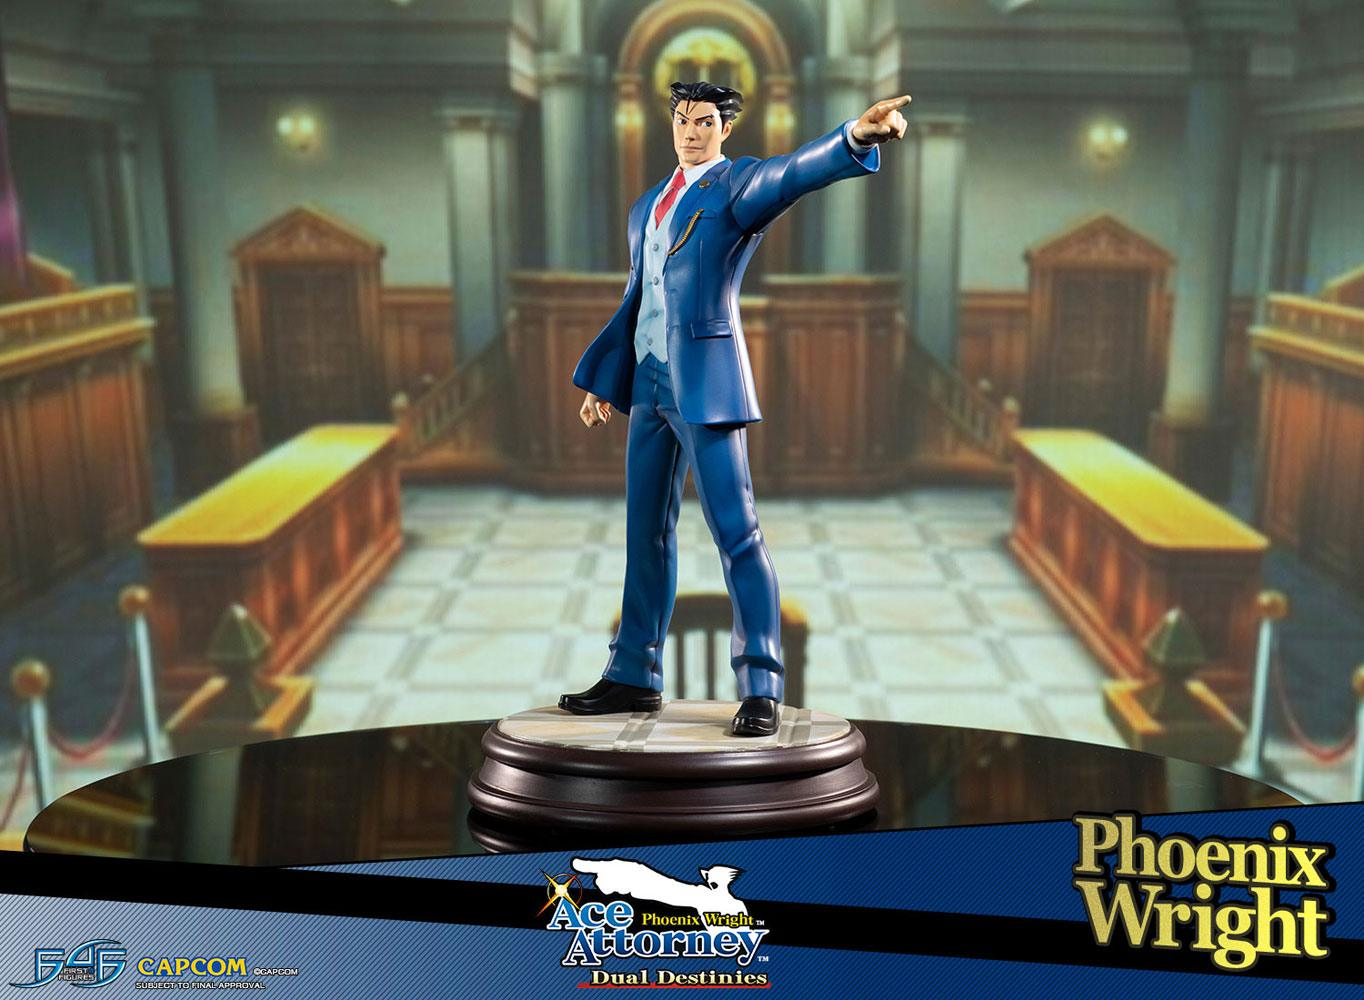 Phoenix Wright Ace Attorney Dual Destinies 1/6 Statue by First 4 Figures